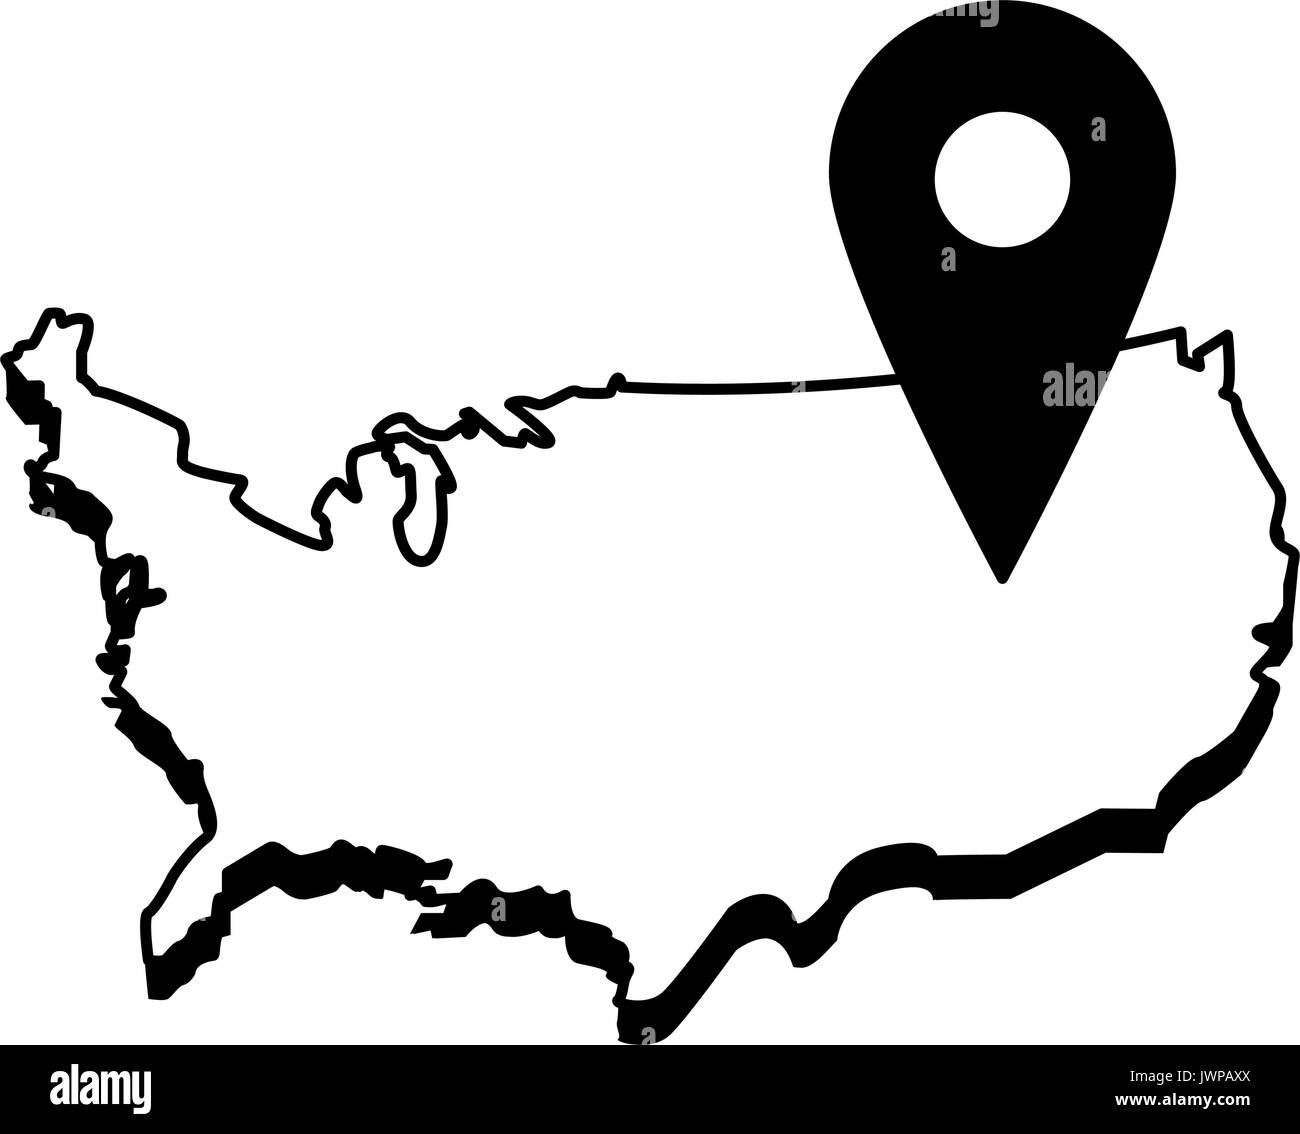 usa map outline with gps pin icon image Stock Vector Art